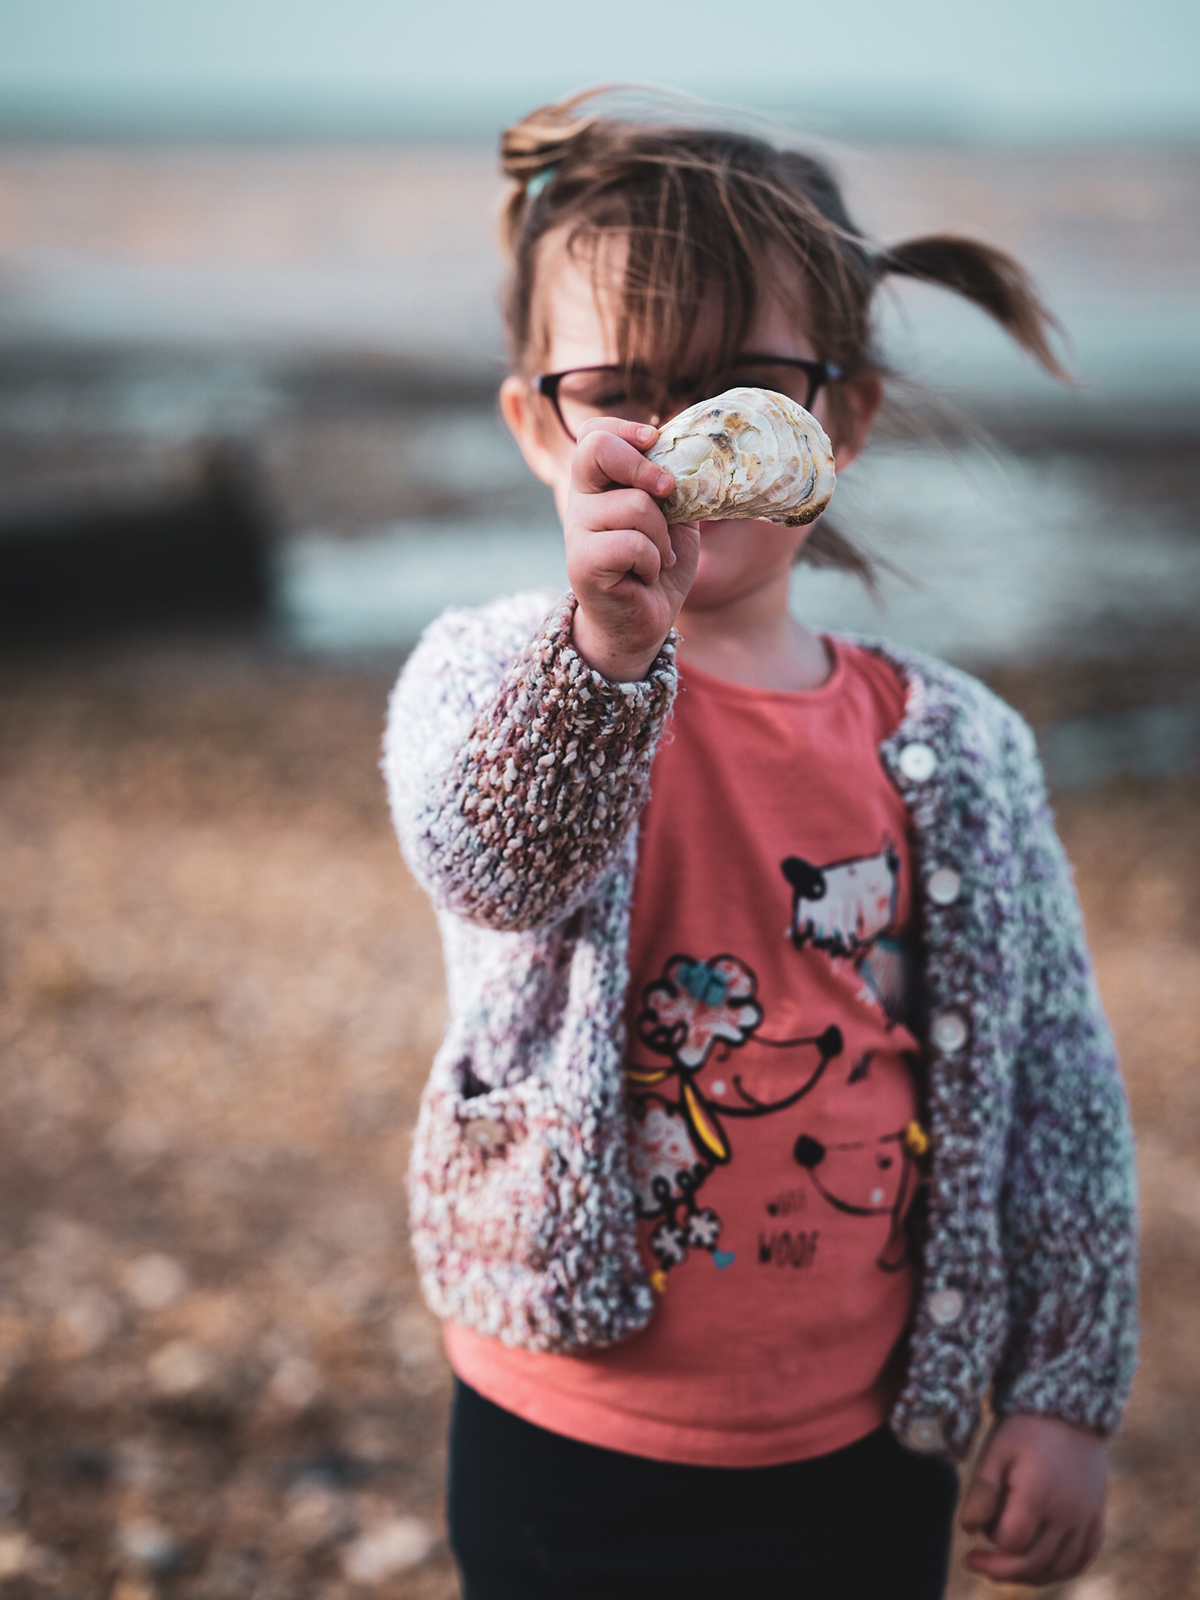 A young girl holds up a seashell she found on the beach